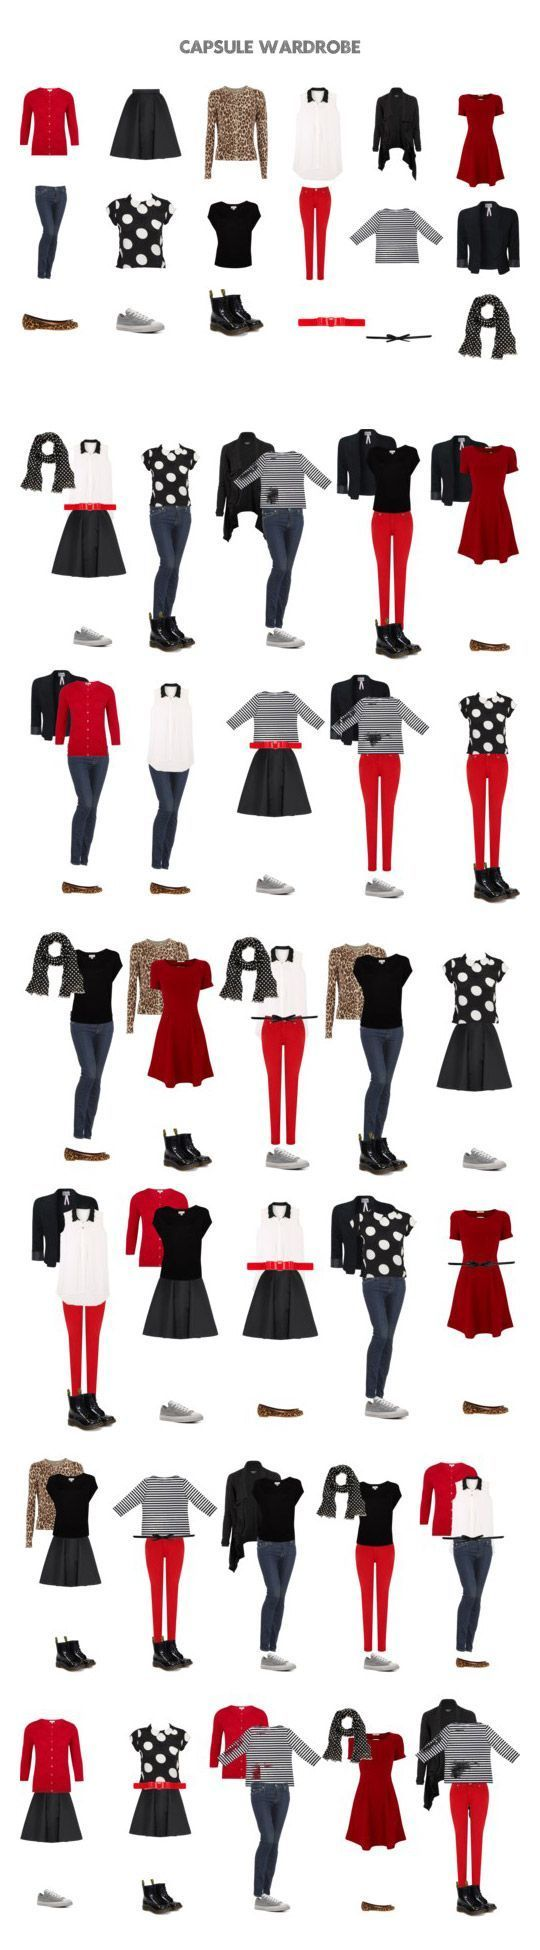 Wardrobe Capsule: black, red, white, leopard. Has great potential with some personal taste modifications. KT